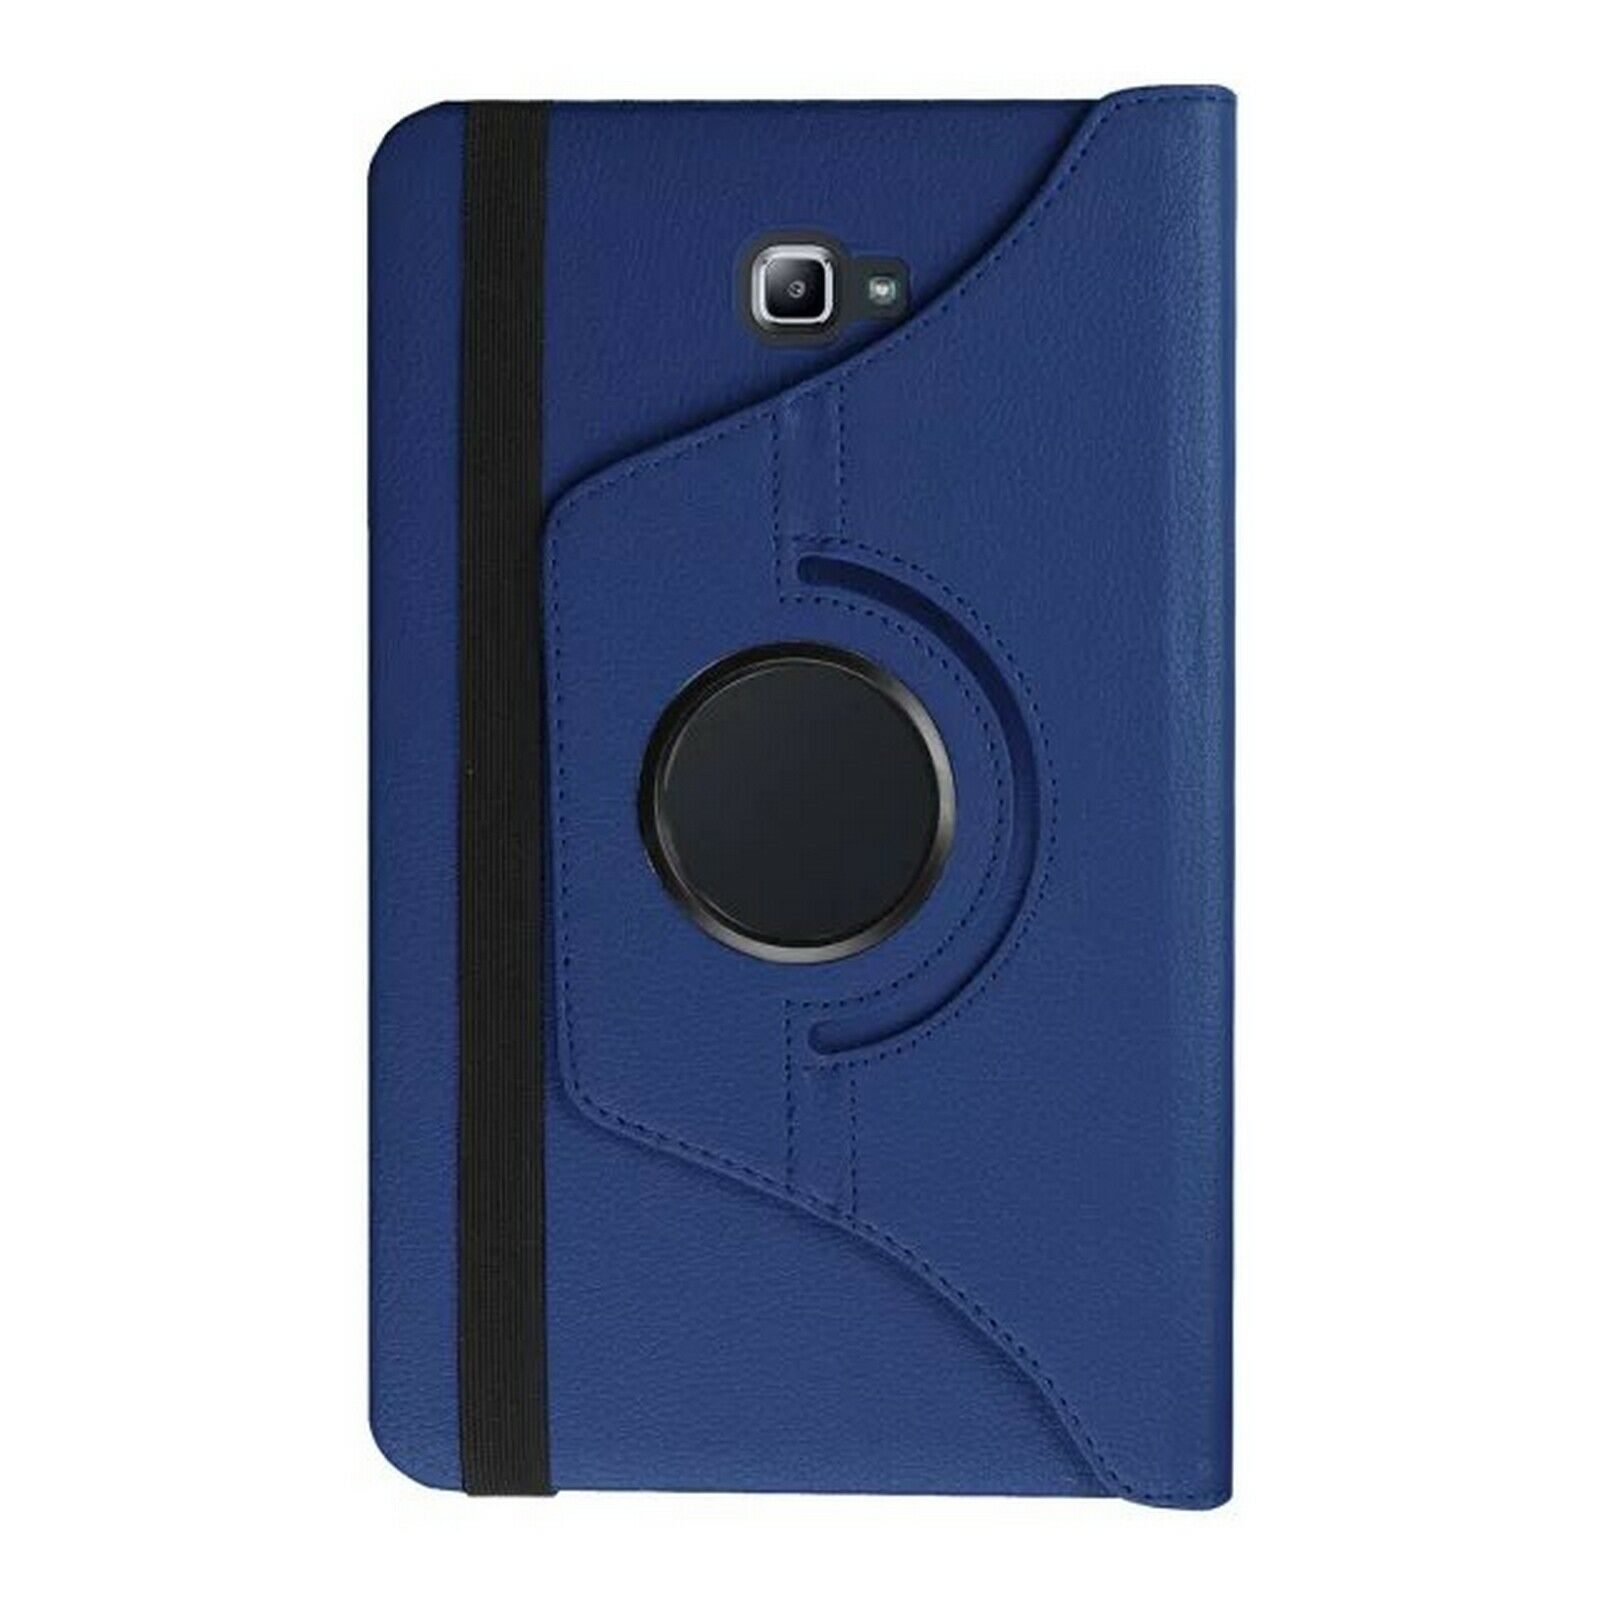 thumbnail 54 - Cover-For-Samsung-Galaxy-Tab-A-2016-10-1-SM-T580-SM-T585-Case-Pouch-Case